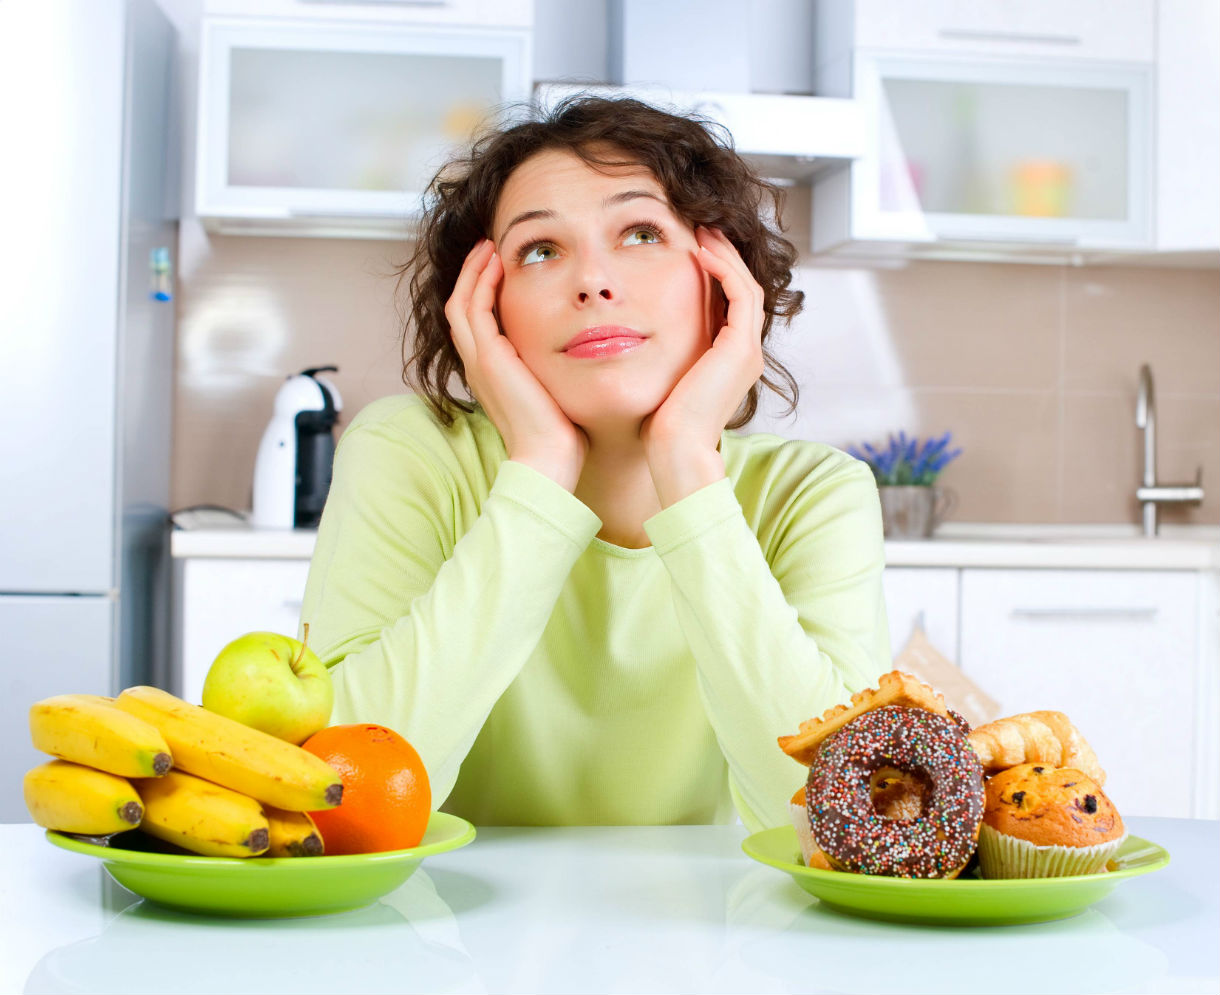 healthy - woman deciding btwn donuts and fruit